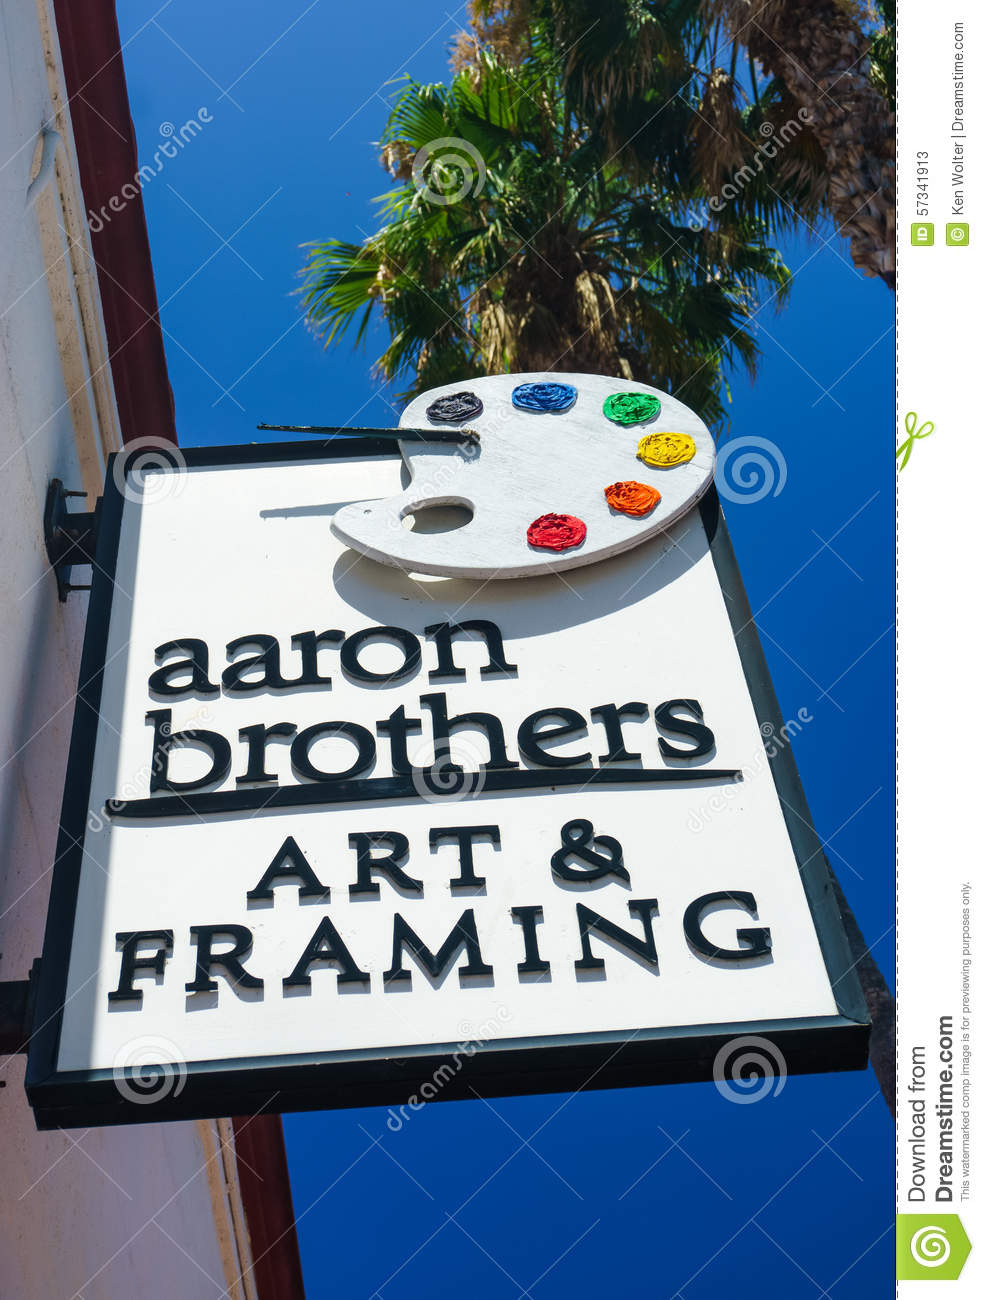 Aaron Brothers Art And Framing Store And Sign Editorial Stock Photo ...